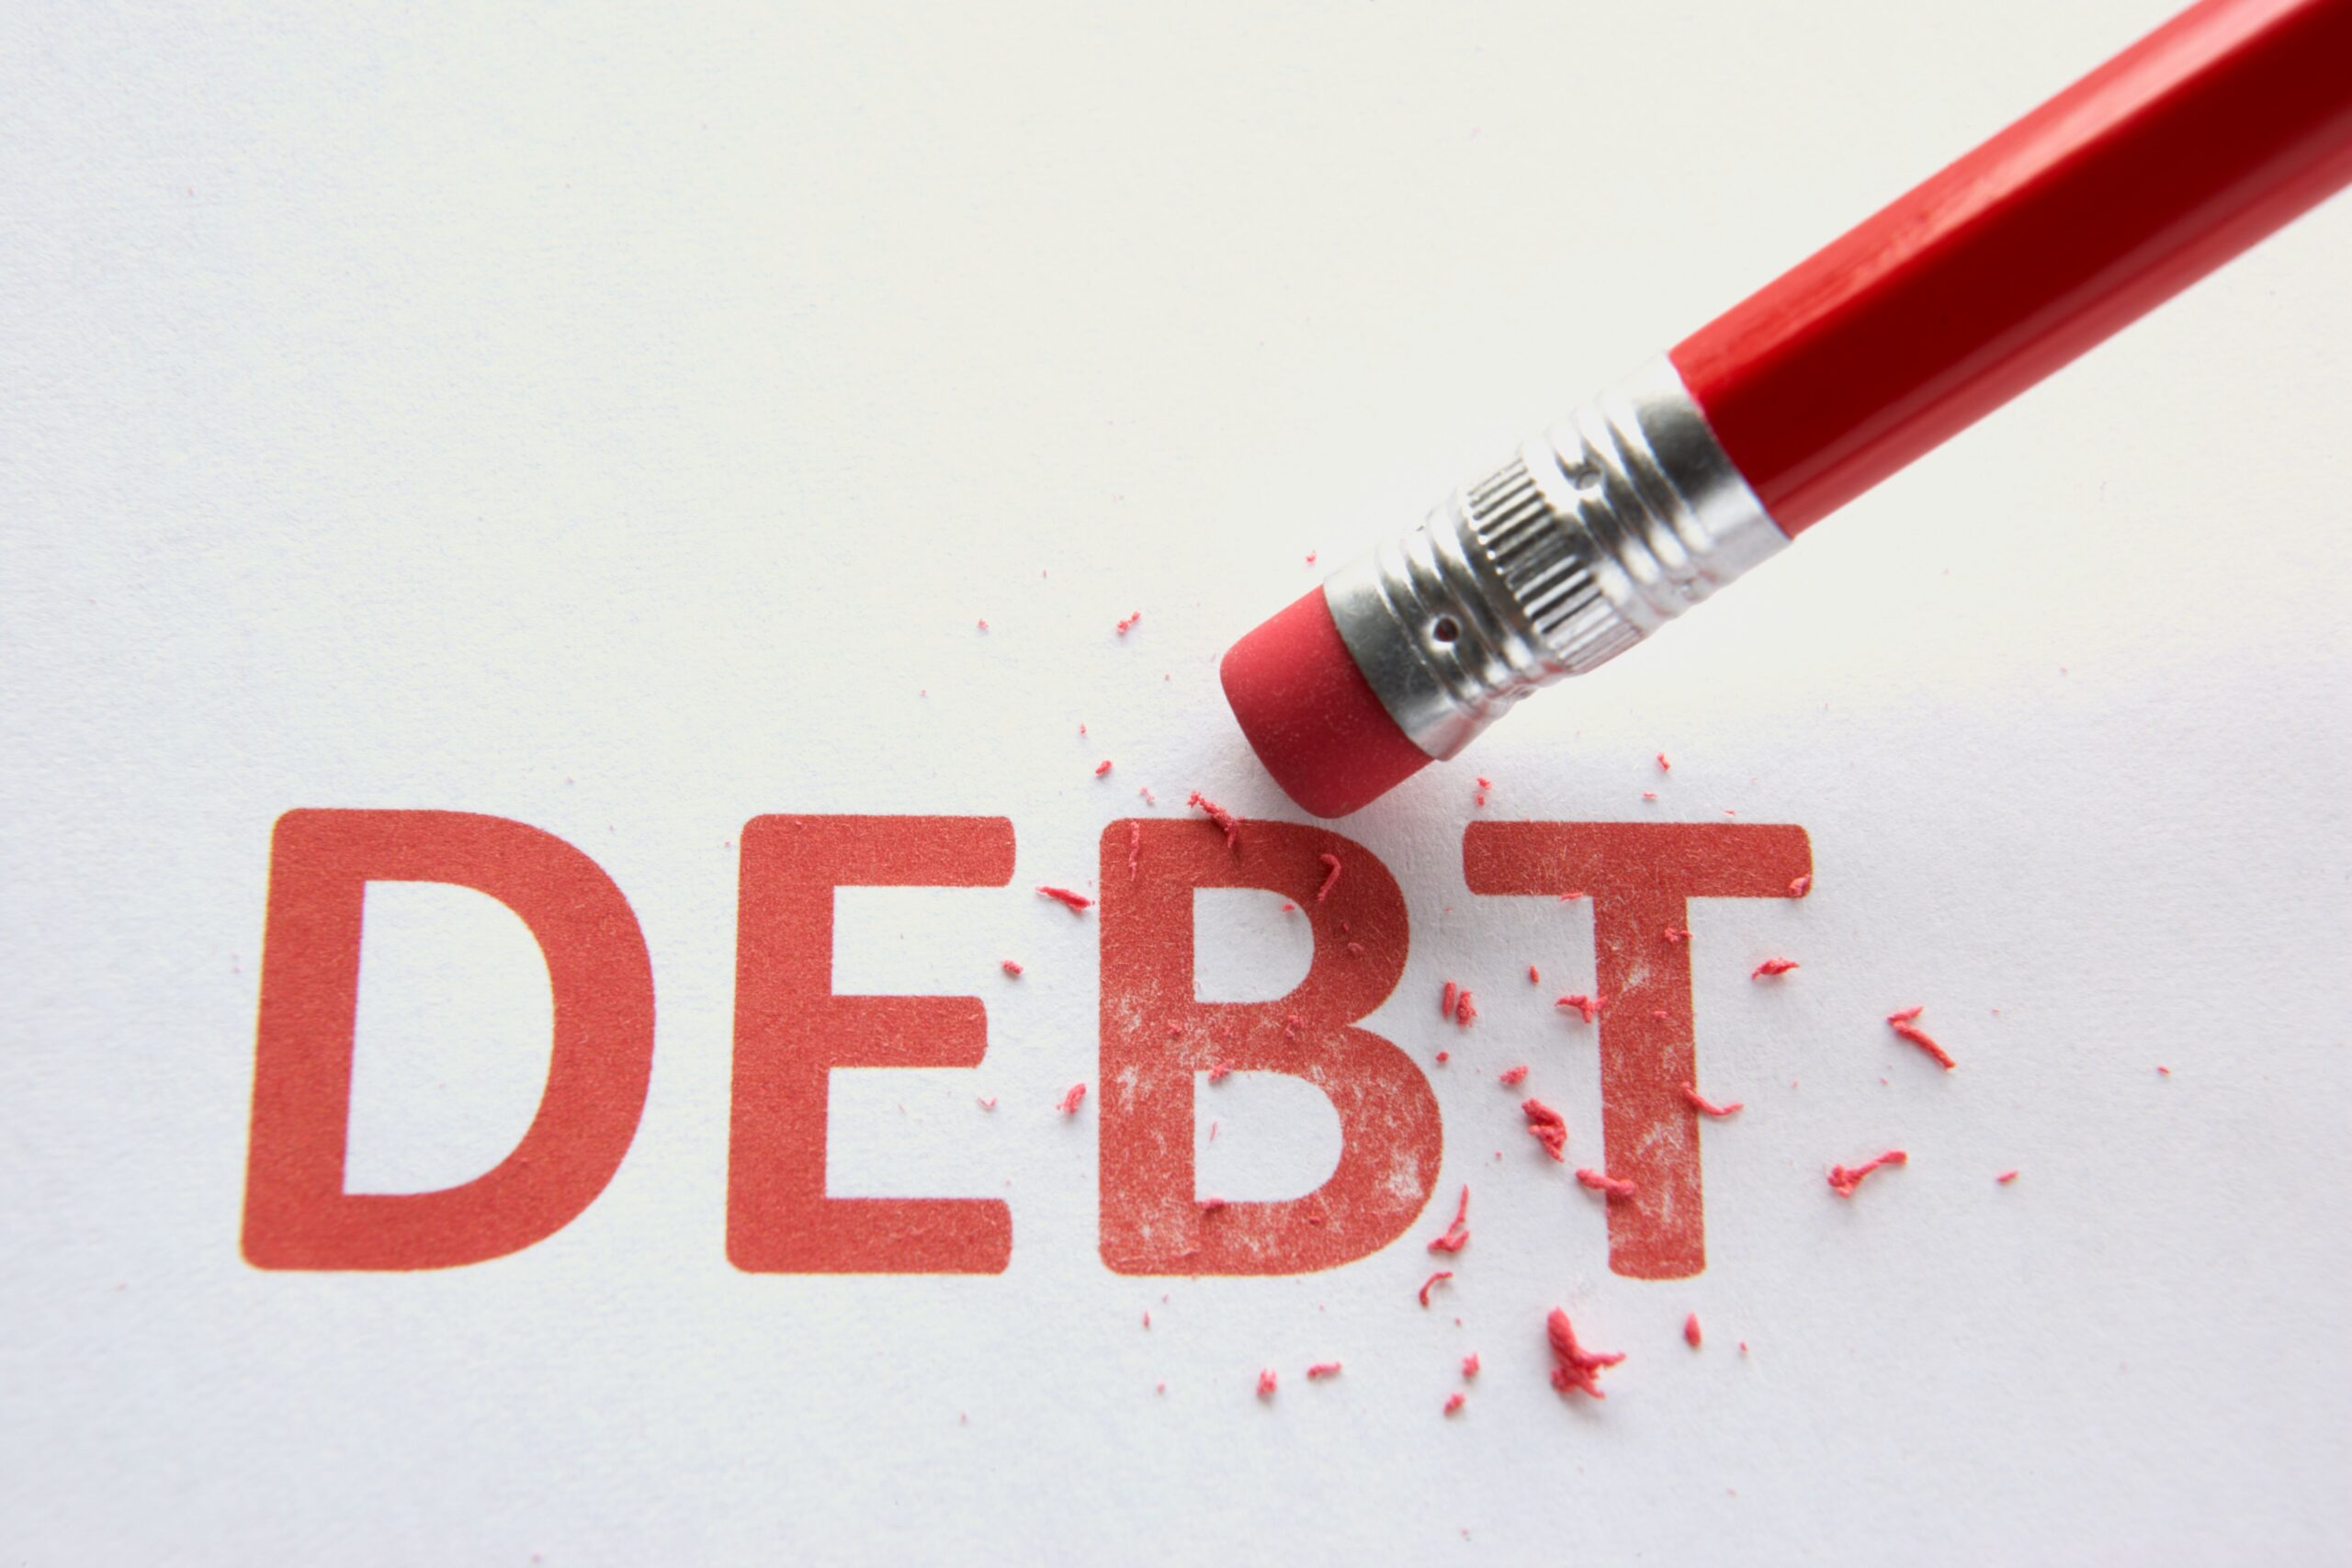 How much debt is written off if I do an IVA?